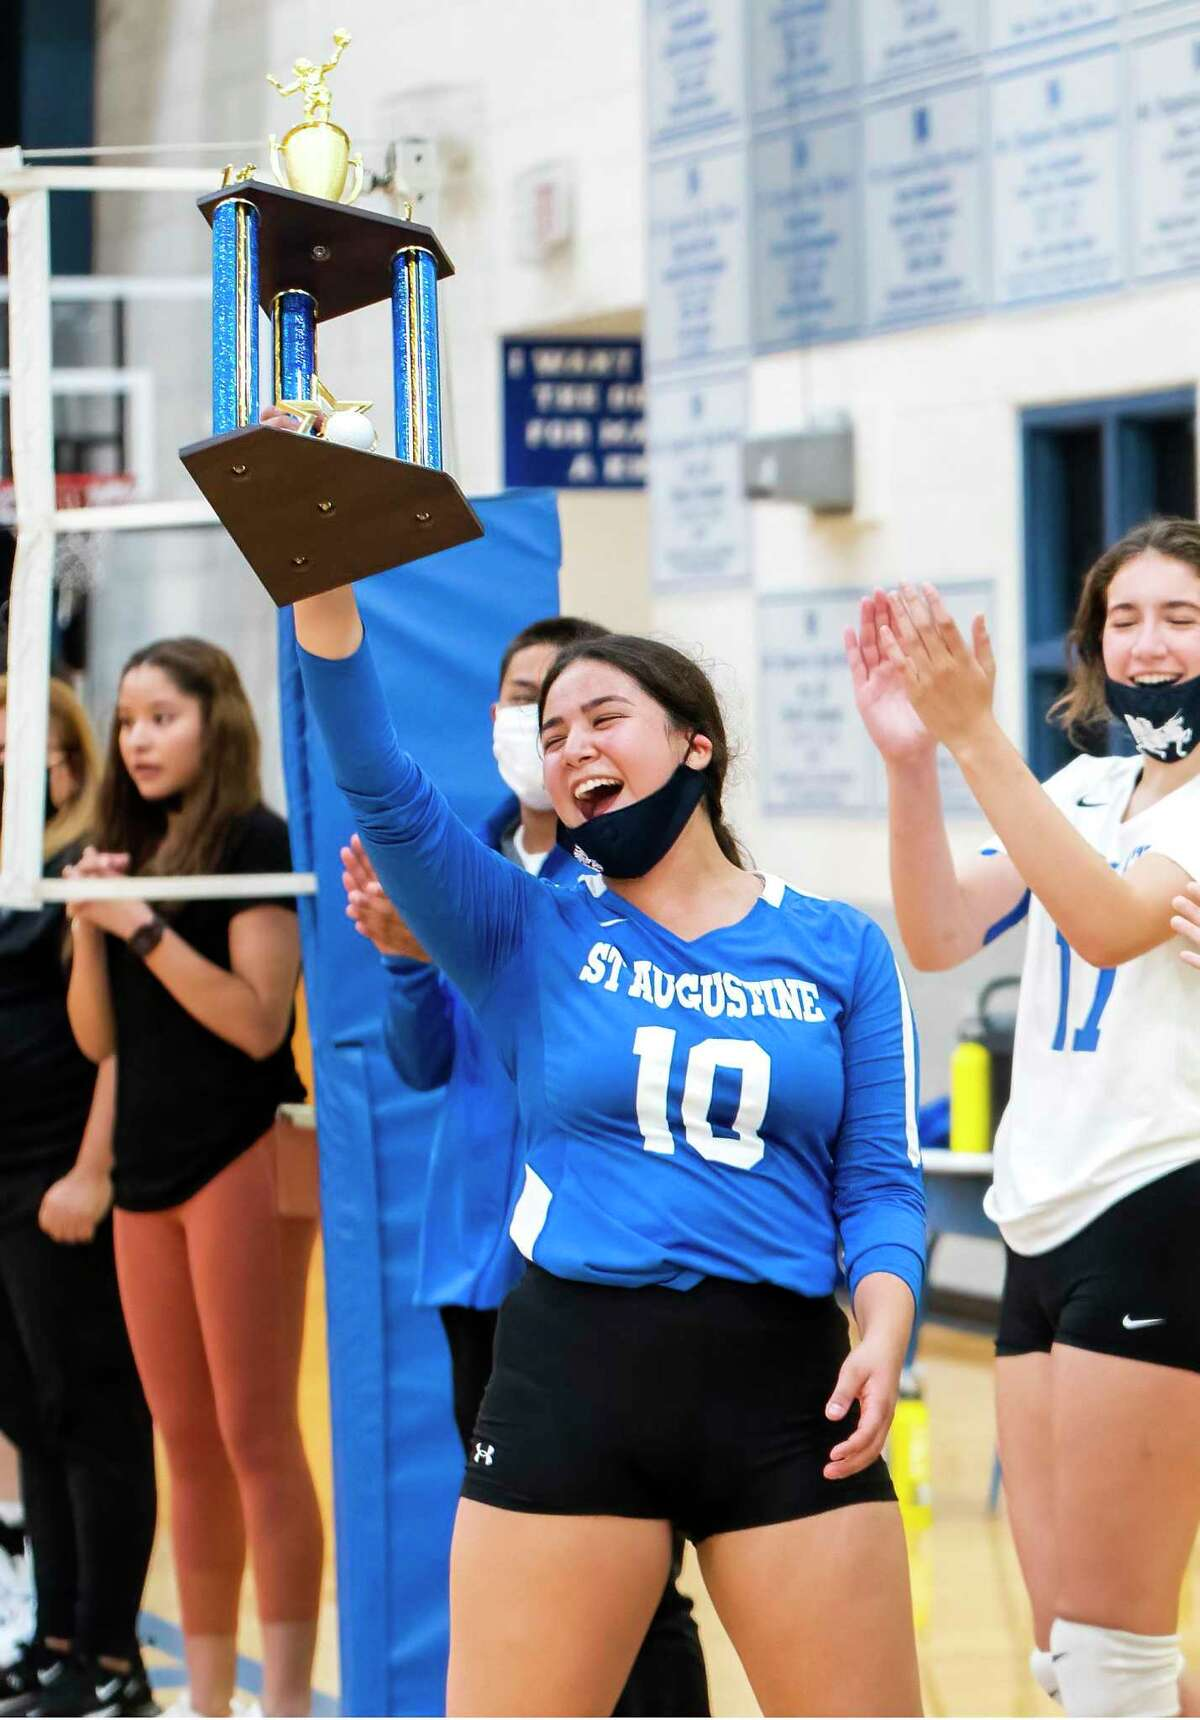 Karla Hurtado and St. Augustine will attempt to improve to 8-0 Tuesday as they travel to face Martin.